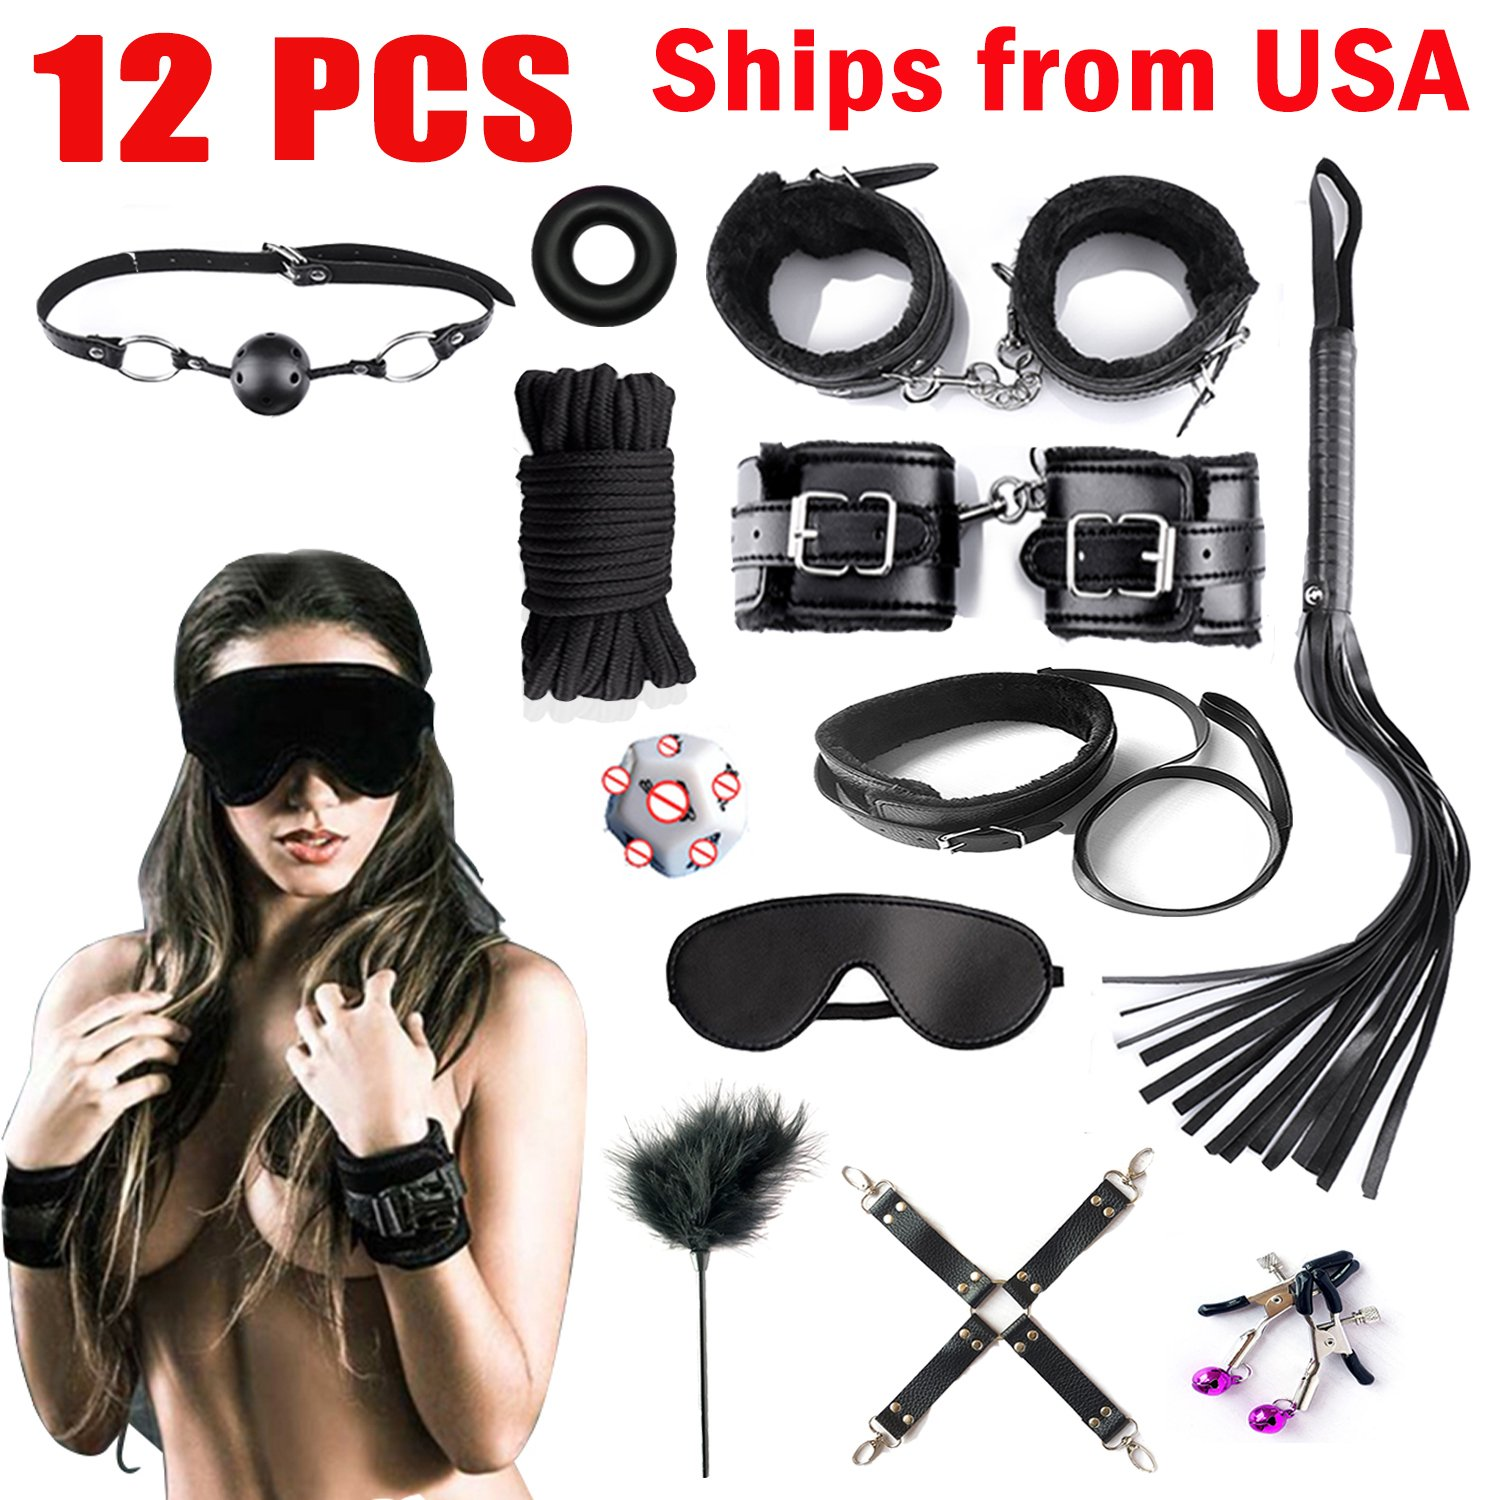 Handcuffs for Under Bed Restraint Kit Bondage Bondageromance Fetish Sex Play BDSM SM Restraining Straps Thigh Game Tie up Mattress Harness Things Blindfold Whips Toys Adults Women sdfgs by ALUTT